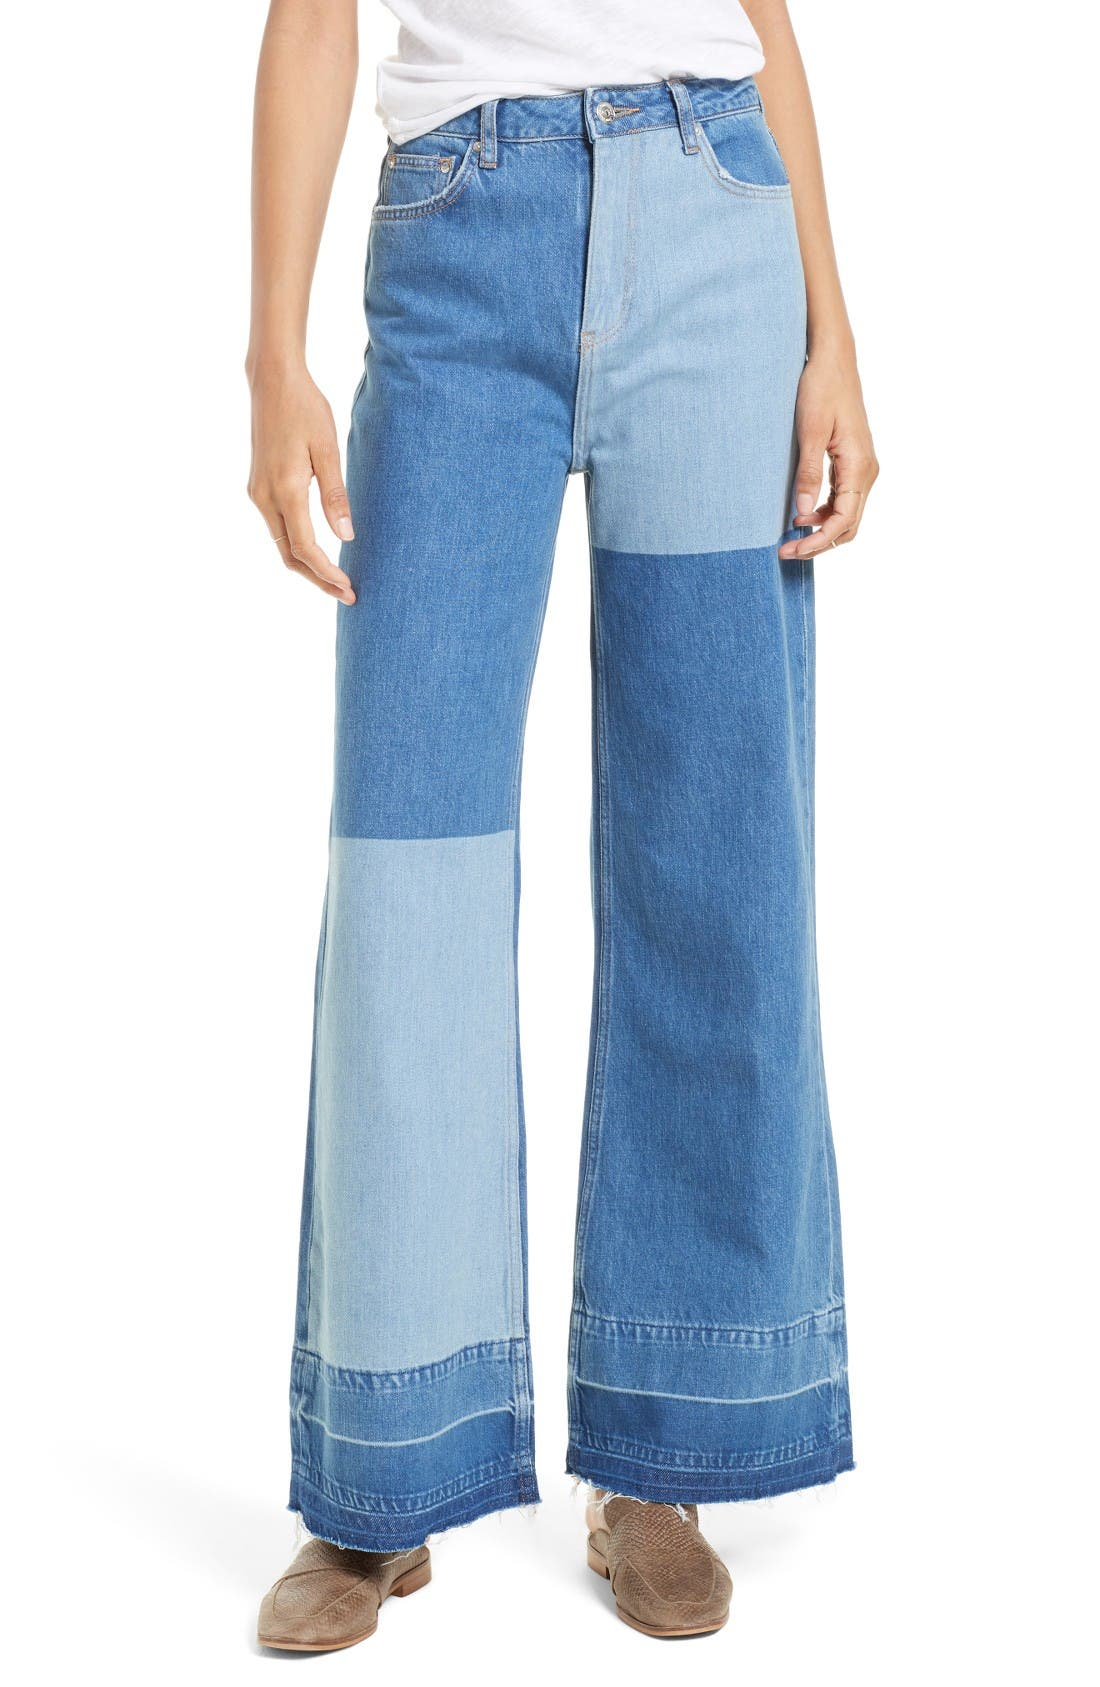 Alternate Image 1 Selected - Free People The Wideleg High Waist Patchwork Jeans